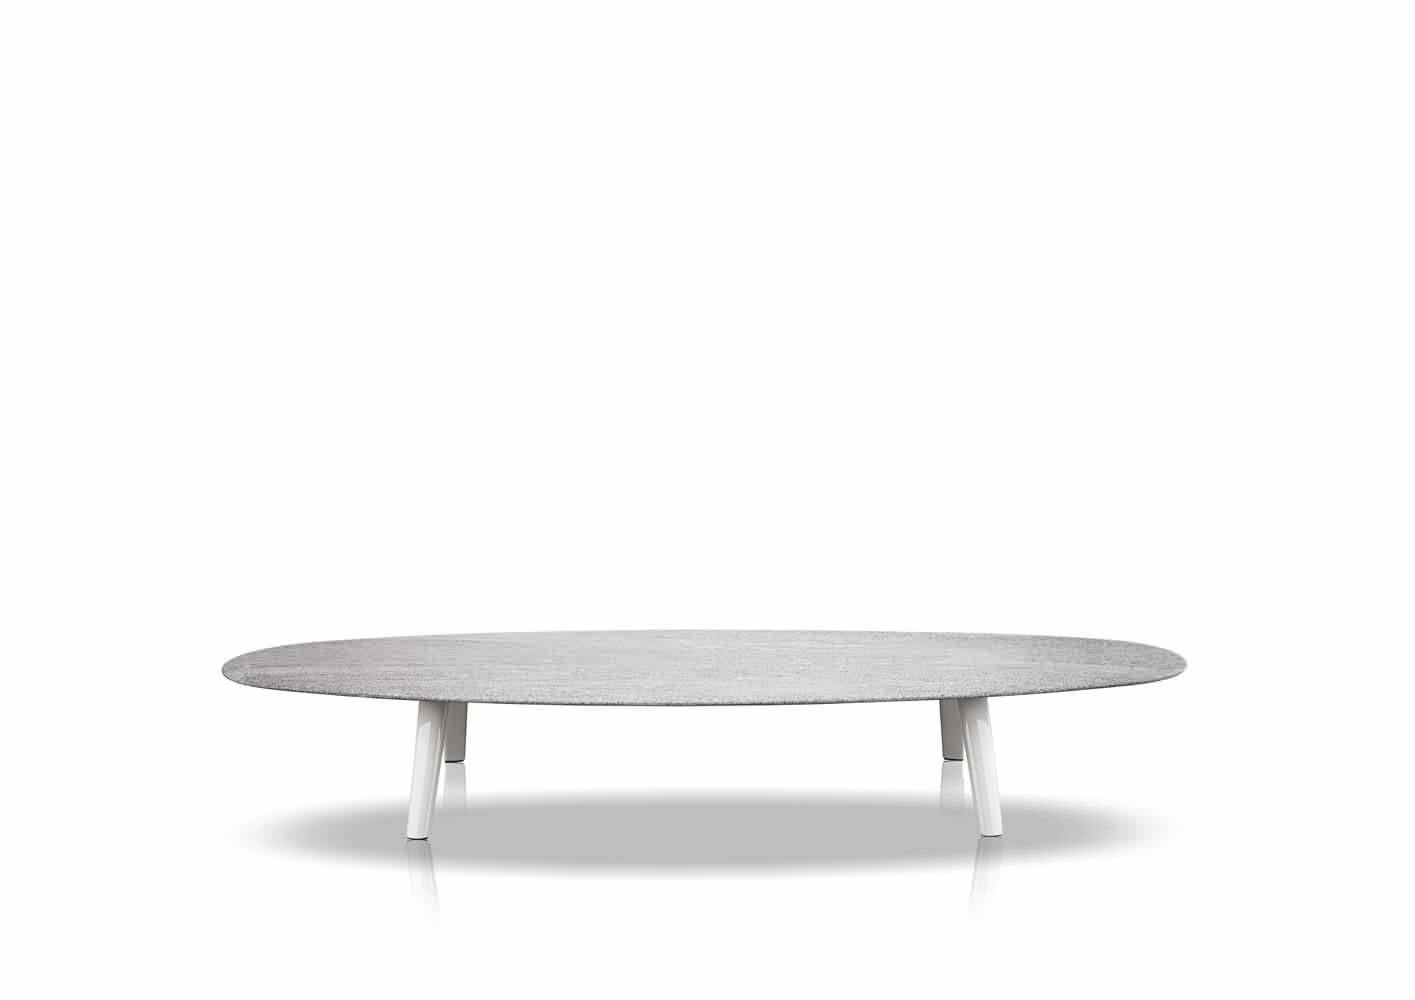 Contemporary Coffee Table / Stone / Oval / Garden - Sullivan - Minotti intended for Oval White Coffee Tables (Image 11 of 30)